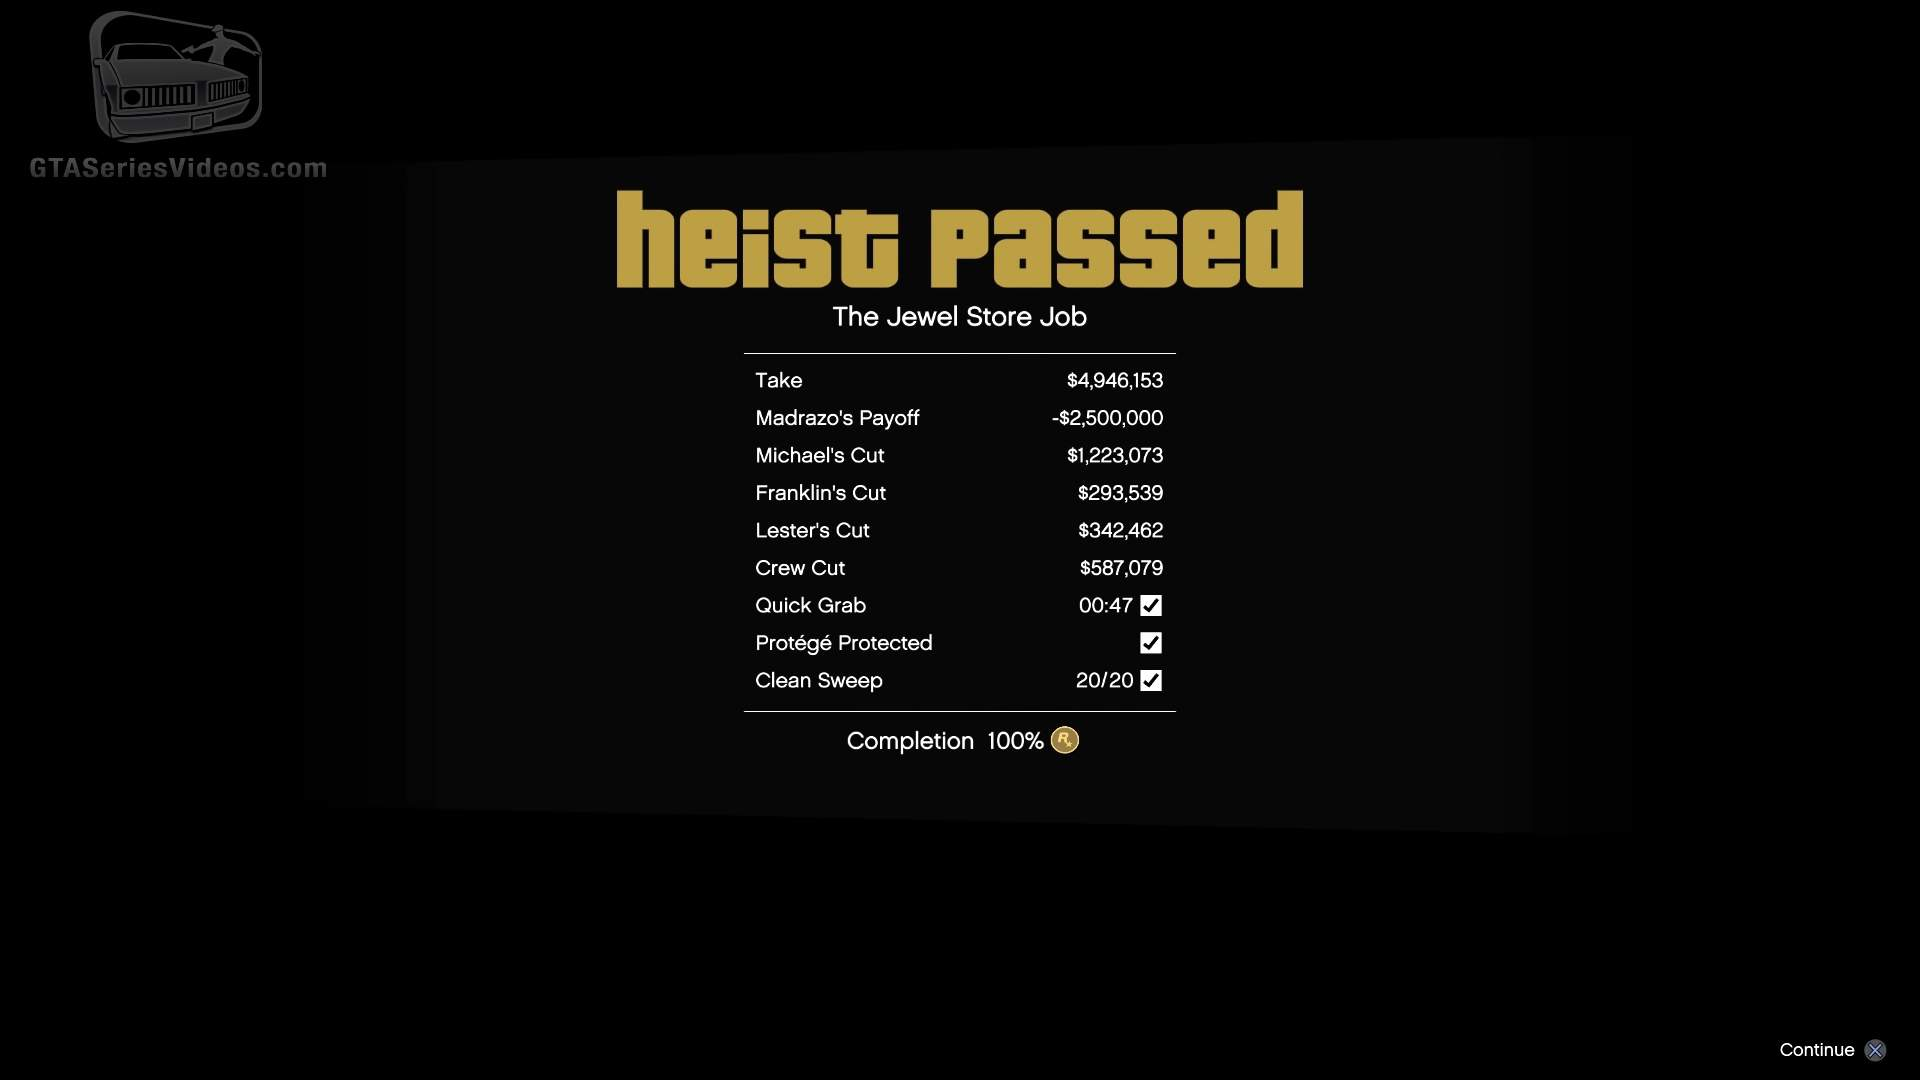 GTA 5 - Heists / Best Crews and Highest Payouts